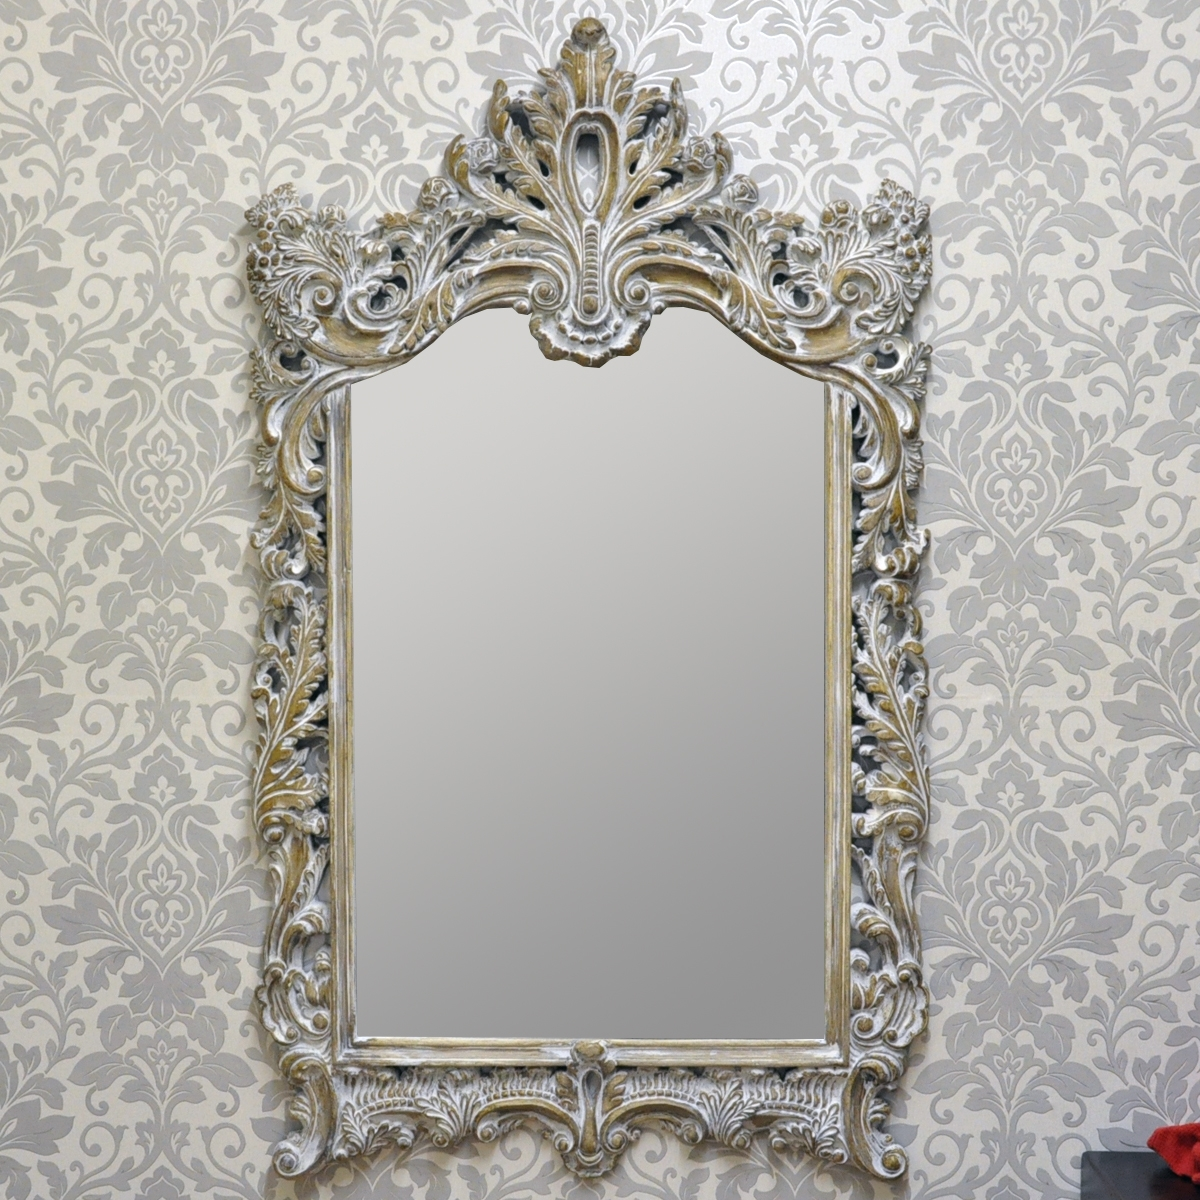 French Style Antique Wash Wall Mirror Acacia Trading Leeds Ltd With Regard To French Style Mirror (View 3 of 15)